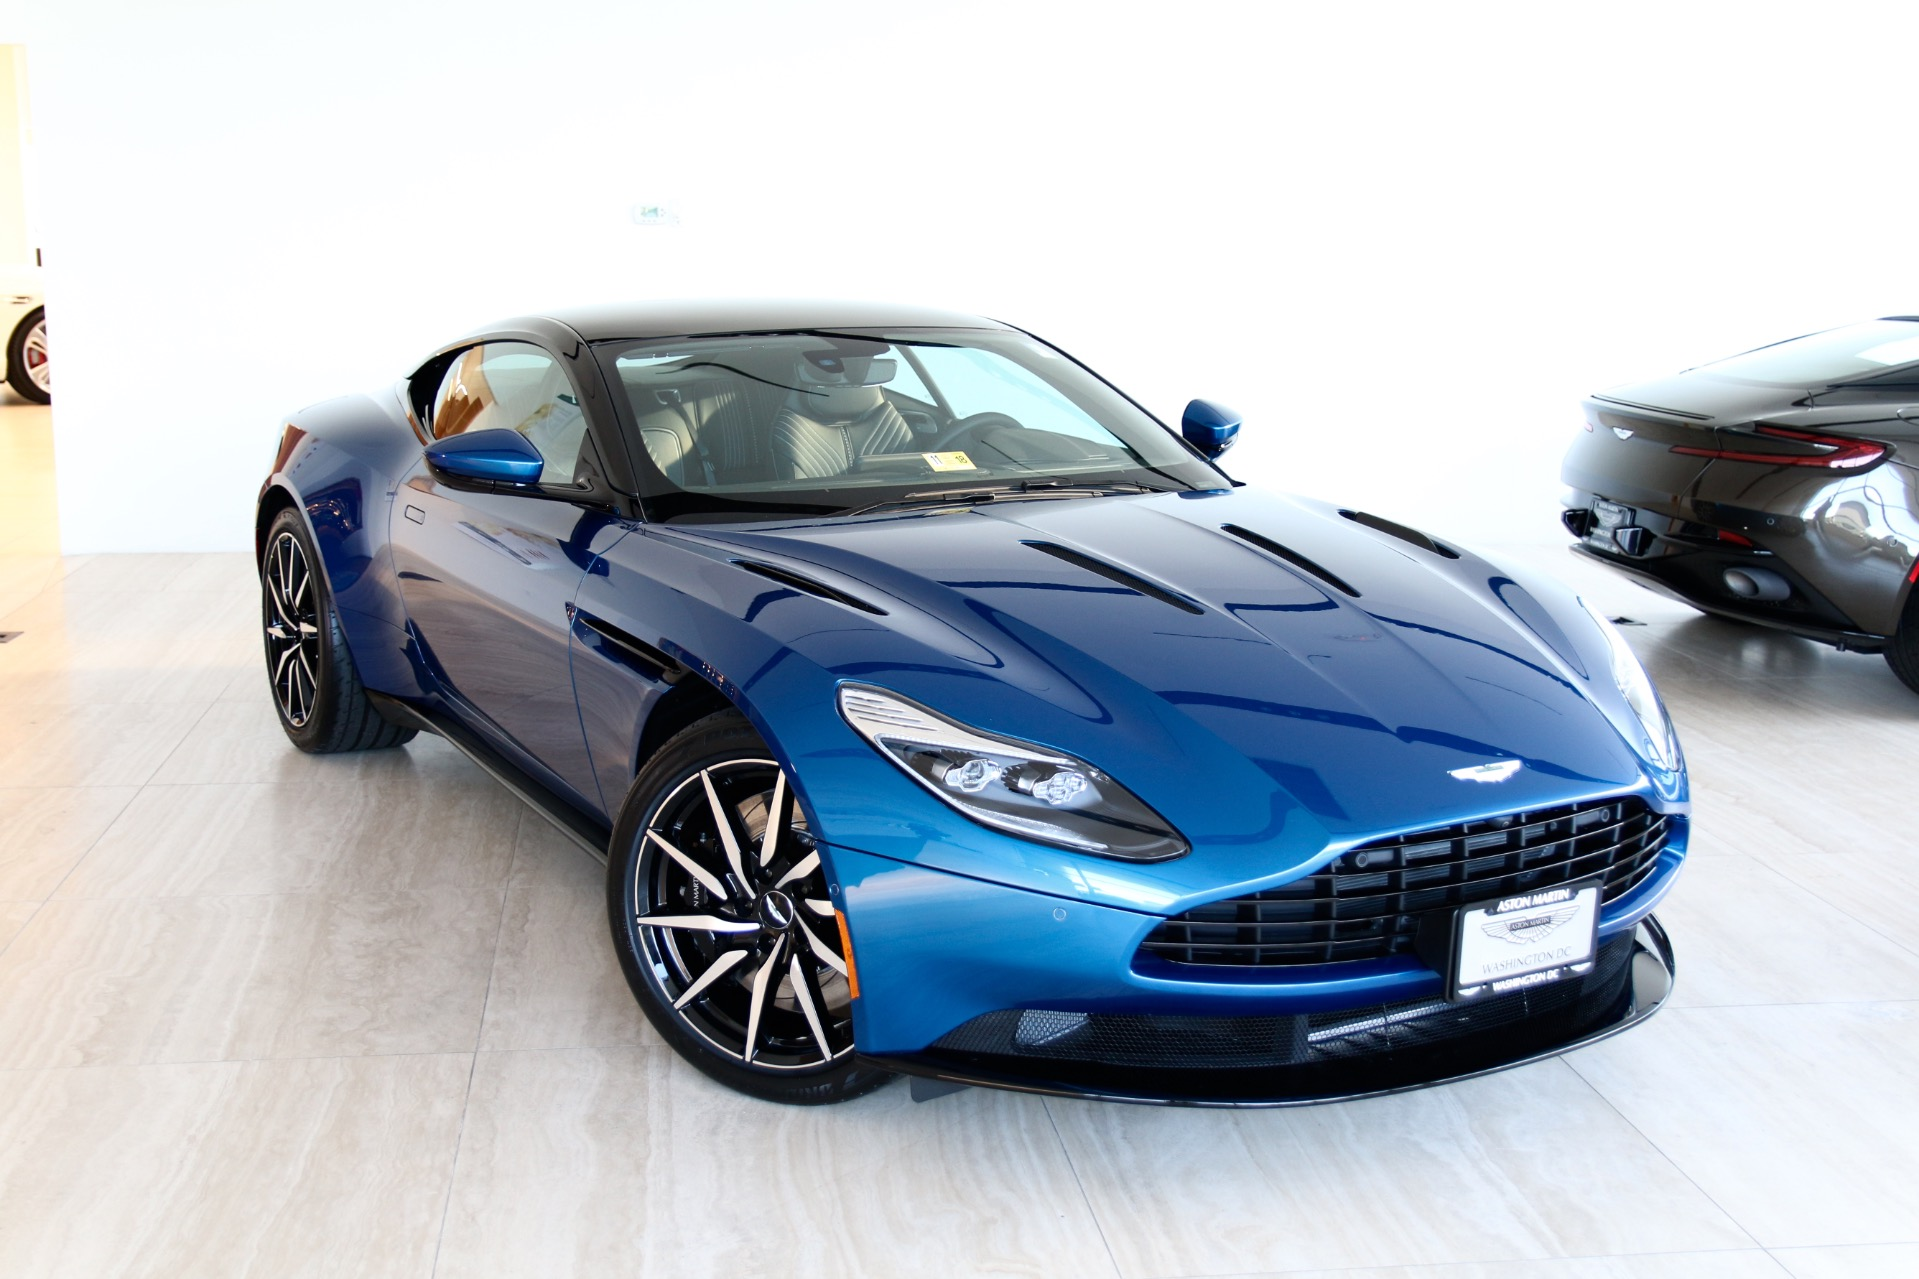 2018 Aston Martin Db11 V12 Stock 8n03312 For Sale Near